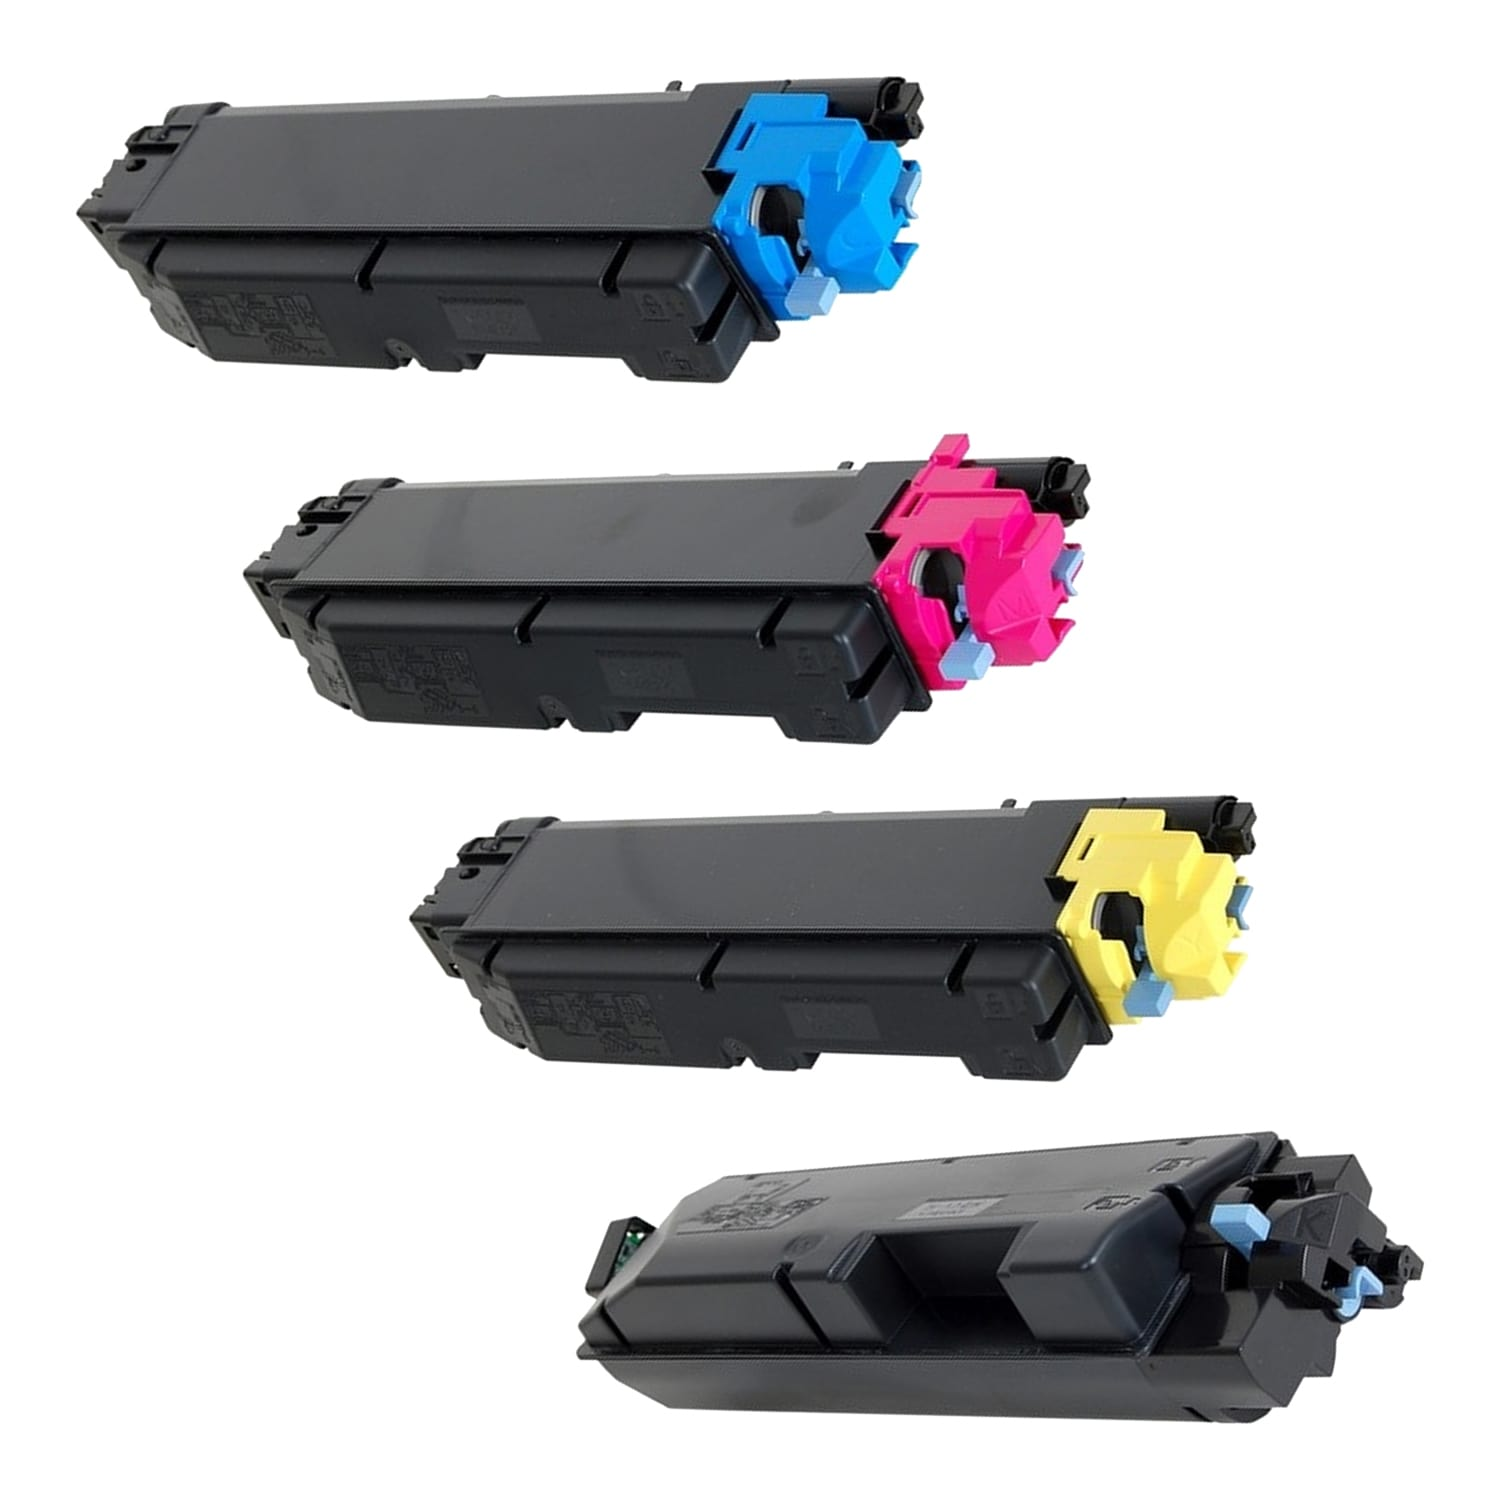 Compatible Kyocera Mita TK-5152 Toner Pack - 4 Cartridges